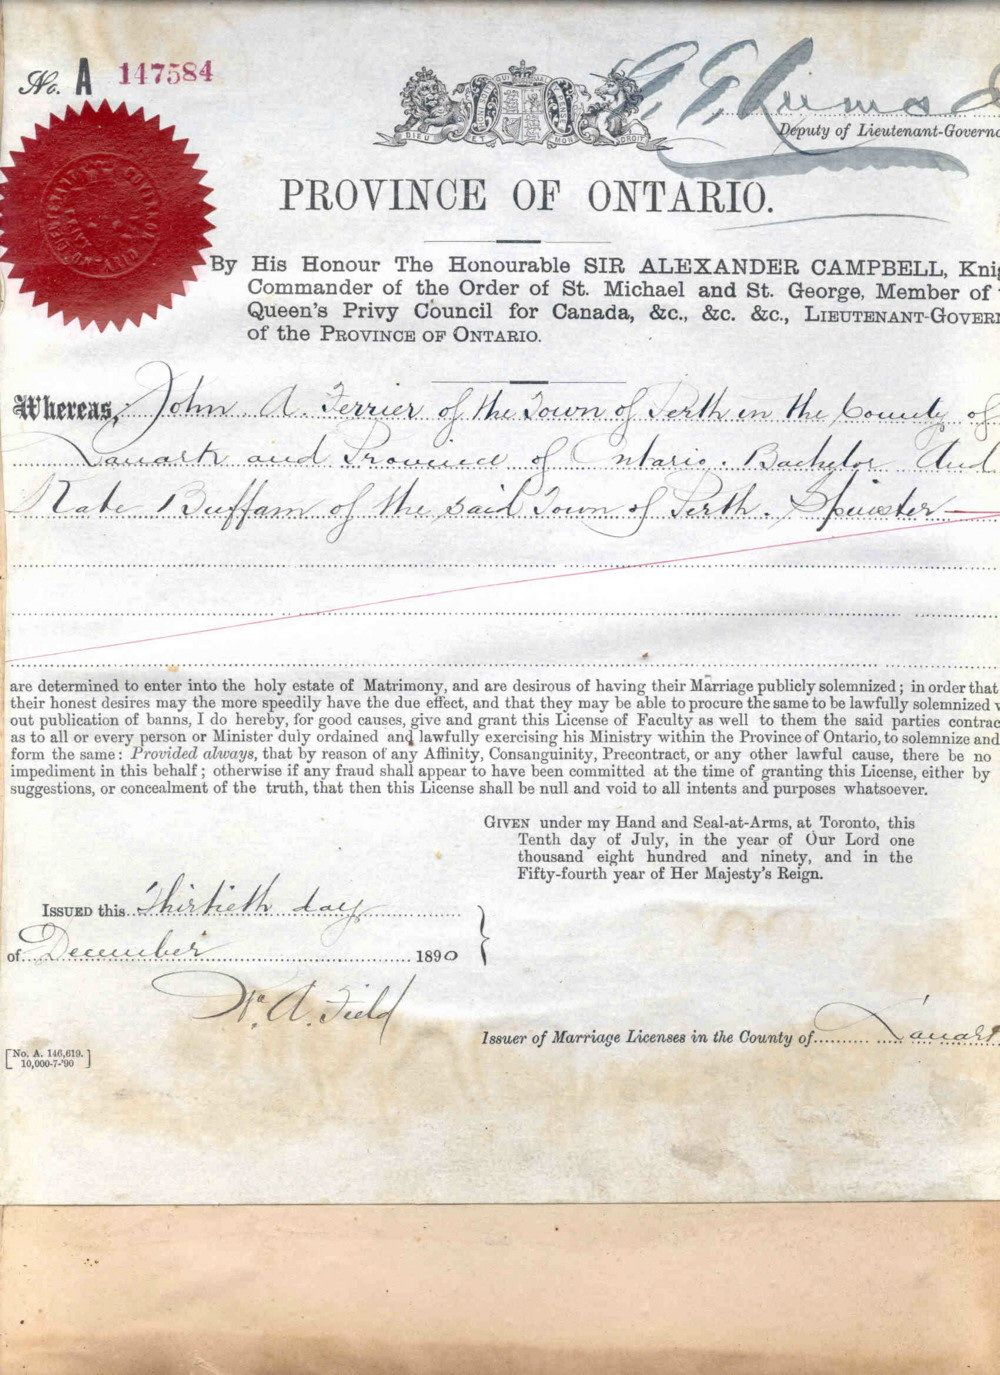 Marriage Certificate For John Alexander Ferrier And Catherine Buffam